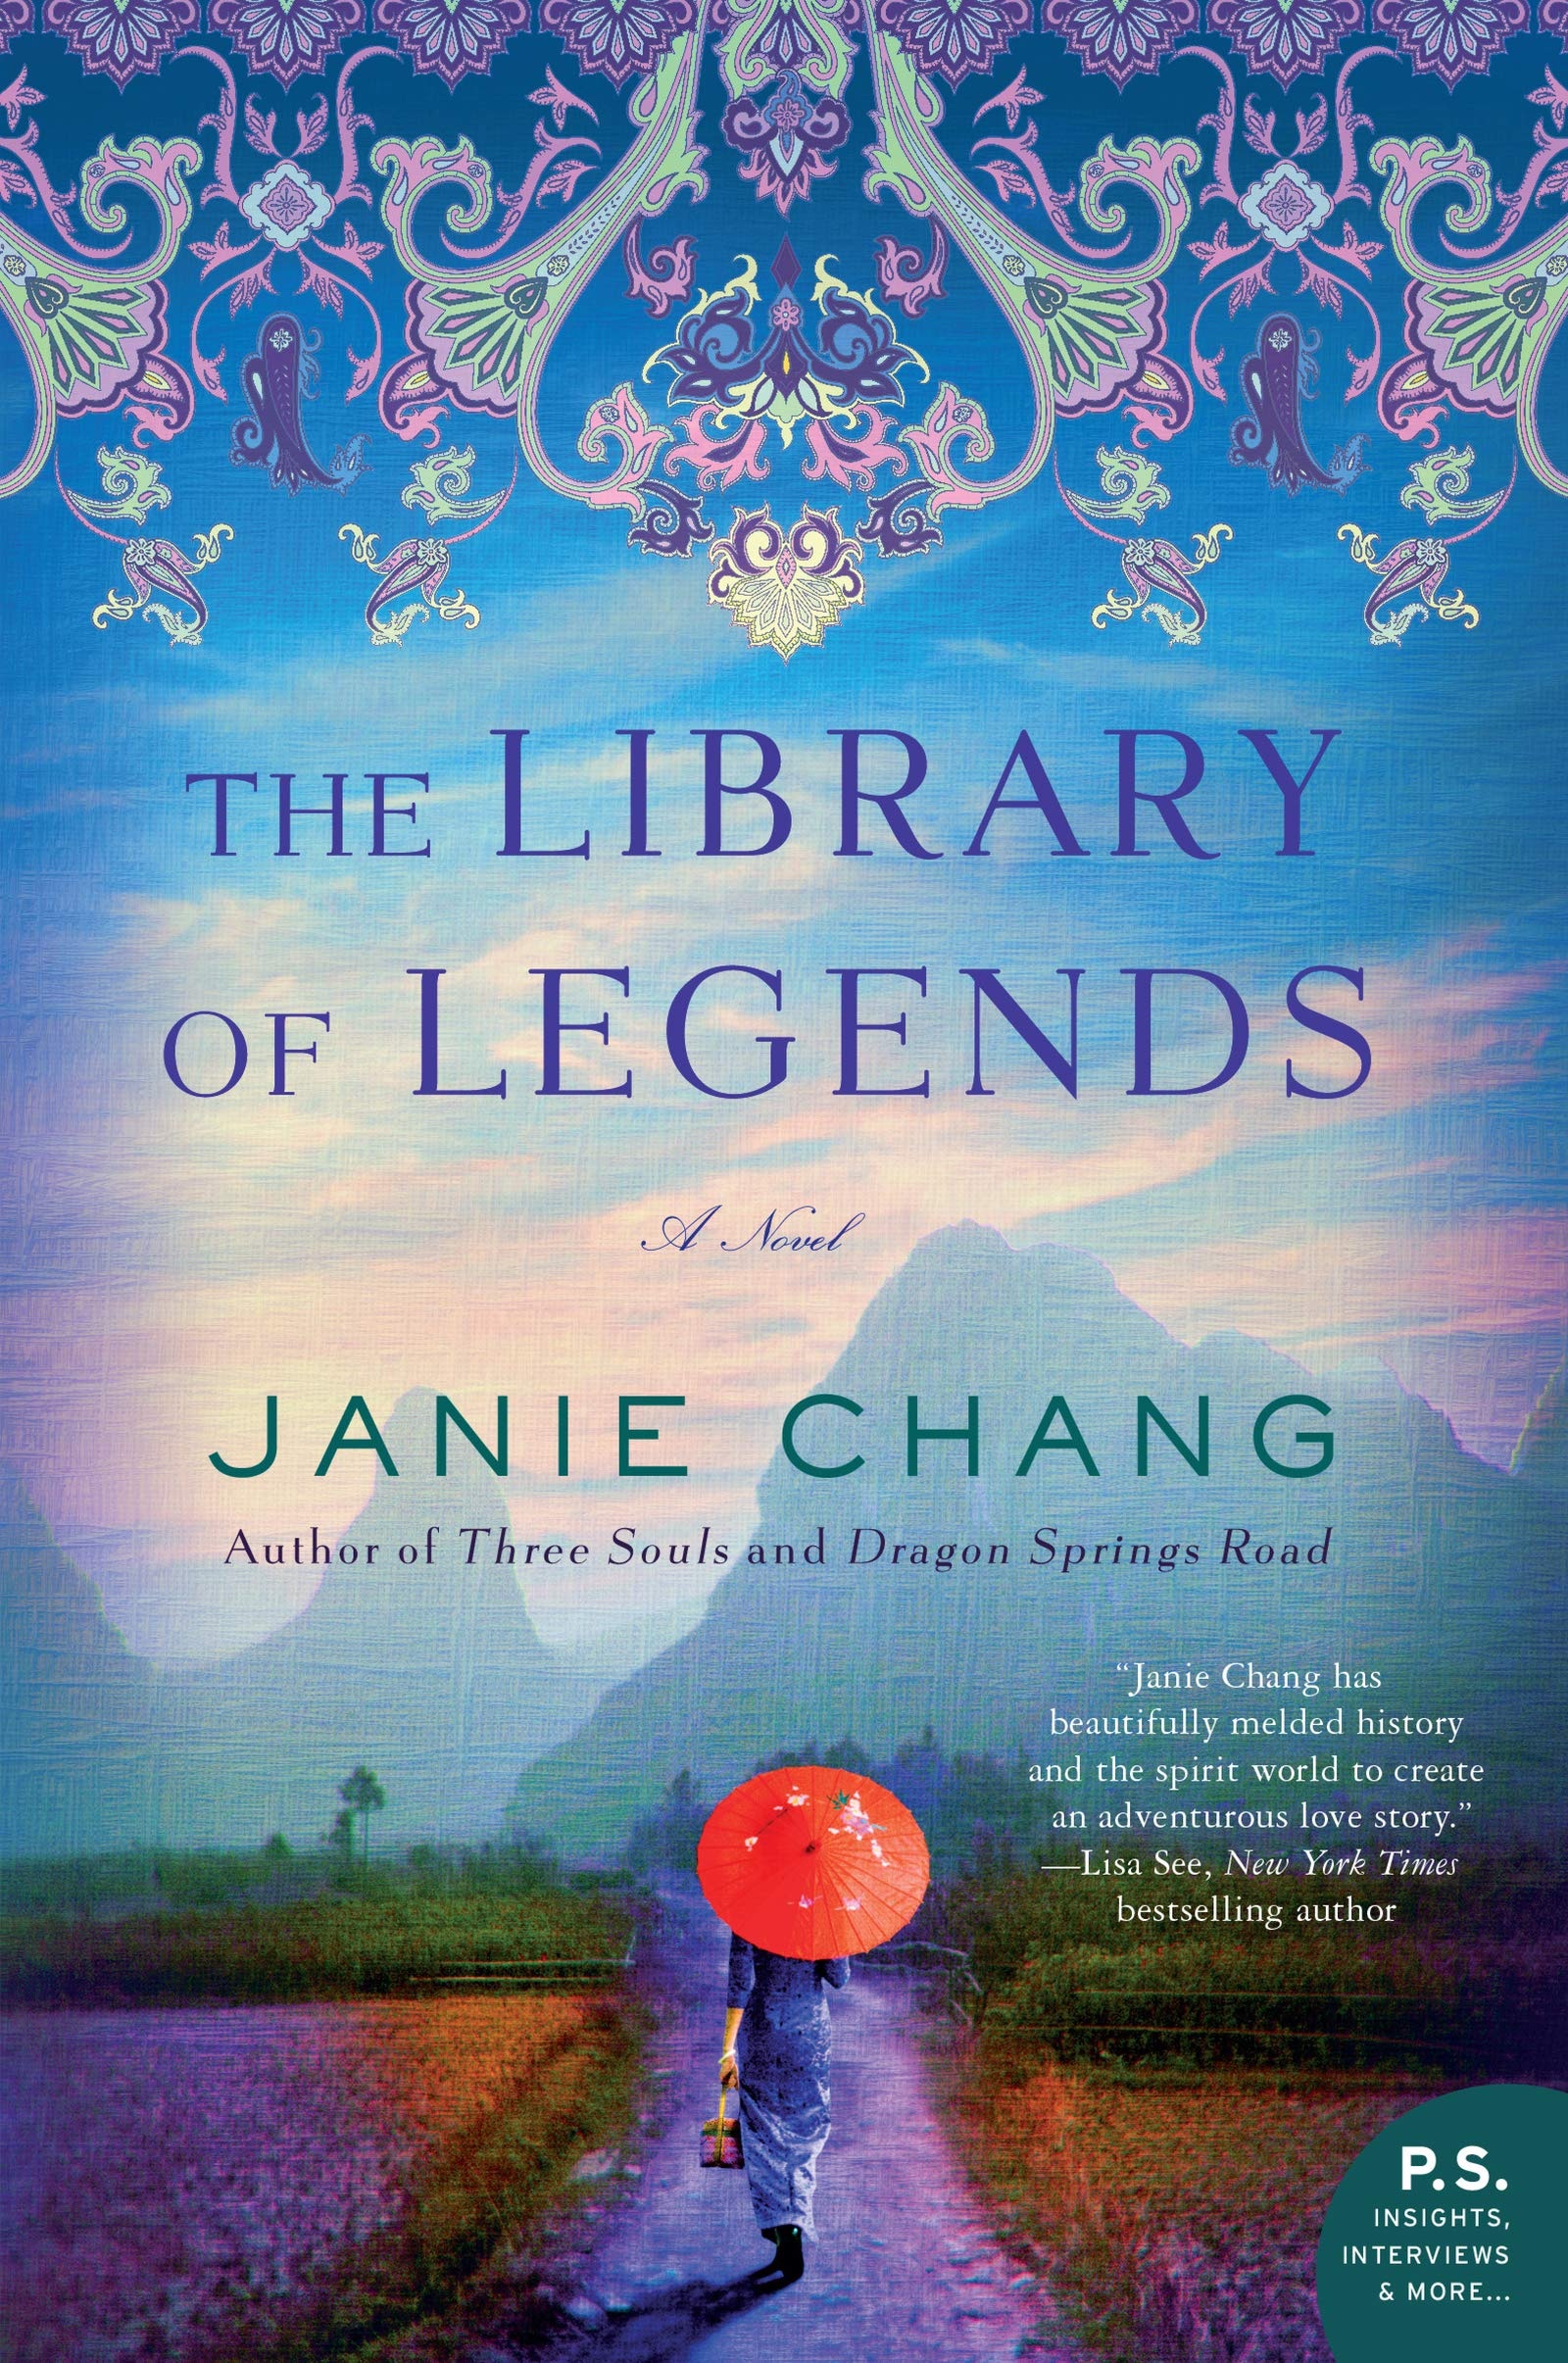 Coalville Book Club (The Library of Legends)